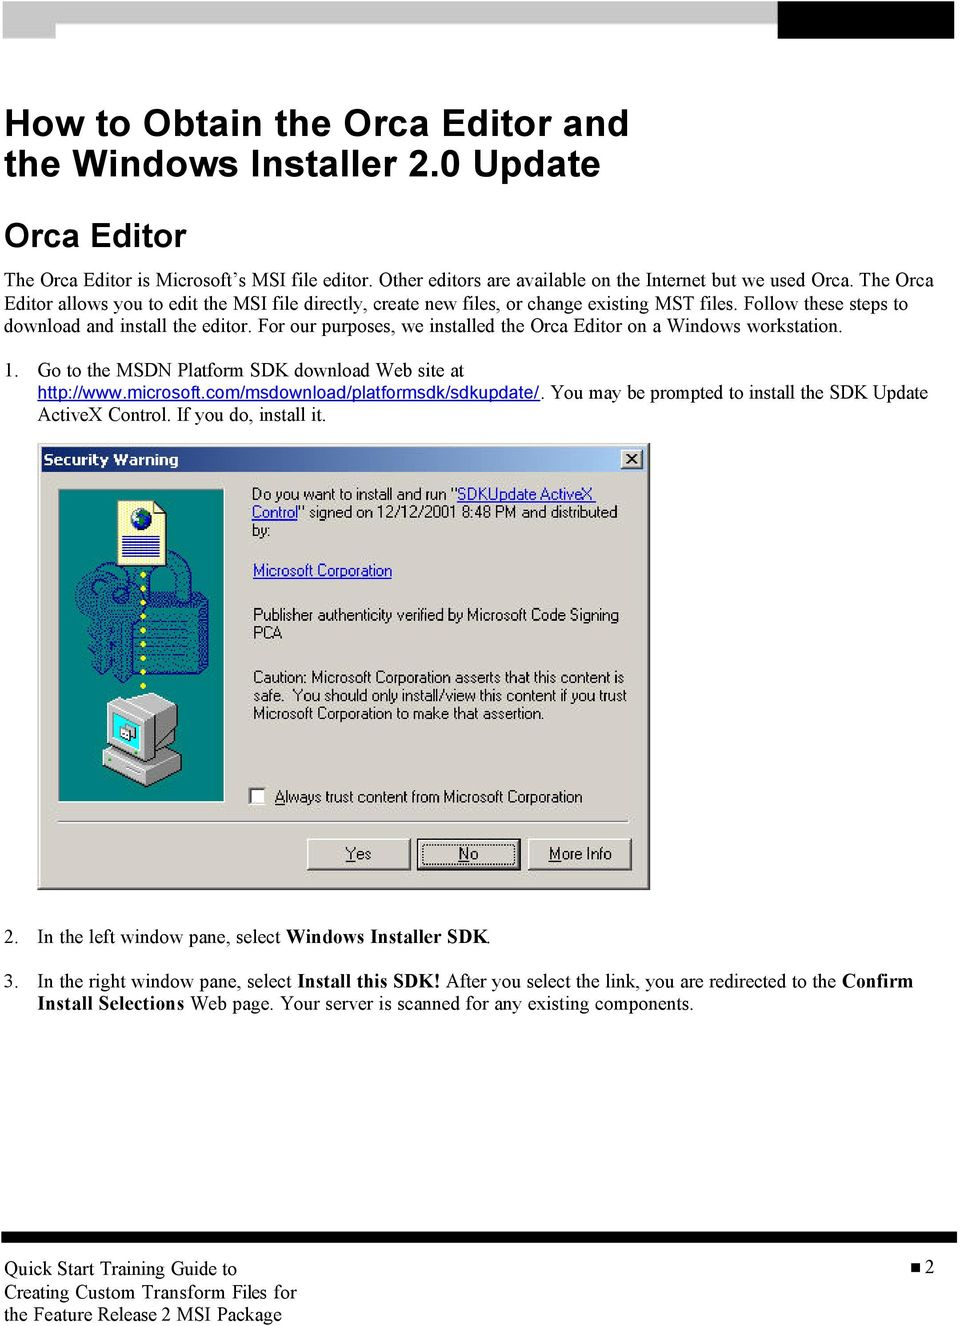 For our purposes, we installed the Orca Editor on a Windows workstation. 1. Go to the MSDN Platform SDK download Web site at http://www.microsoft.com/msdownload/platformsdk/sdkupdate/.